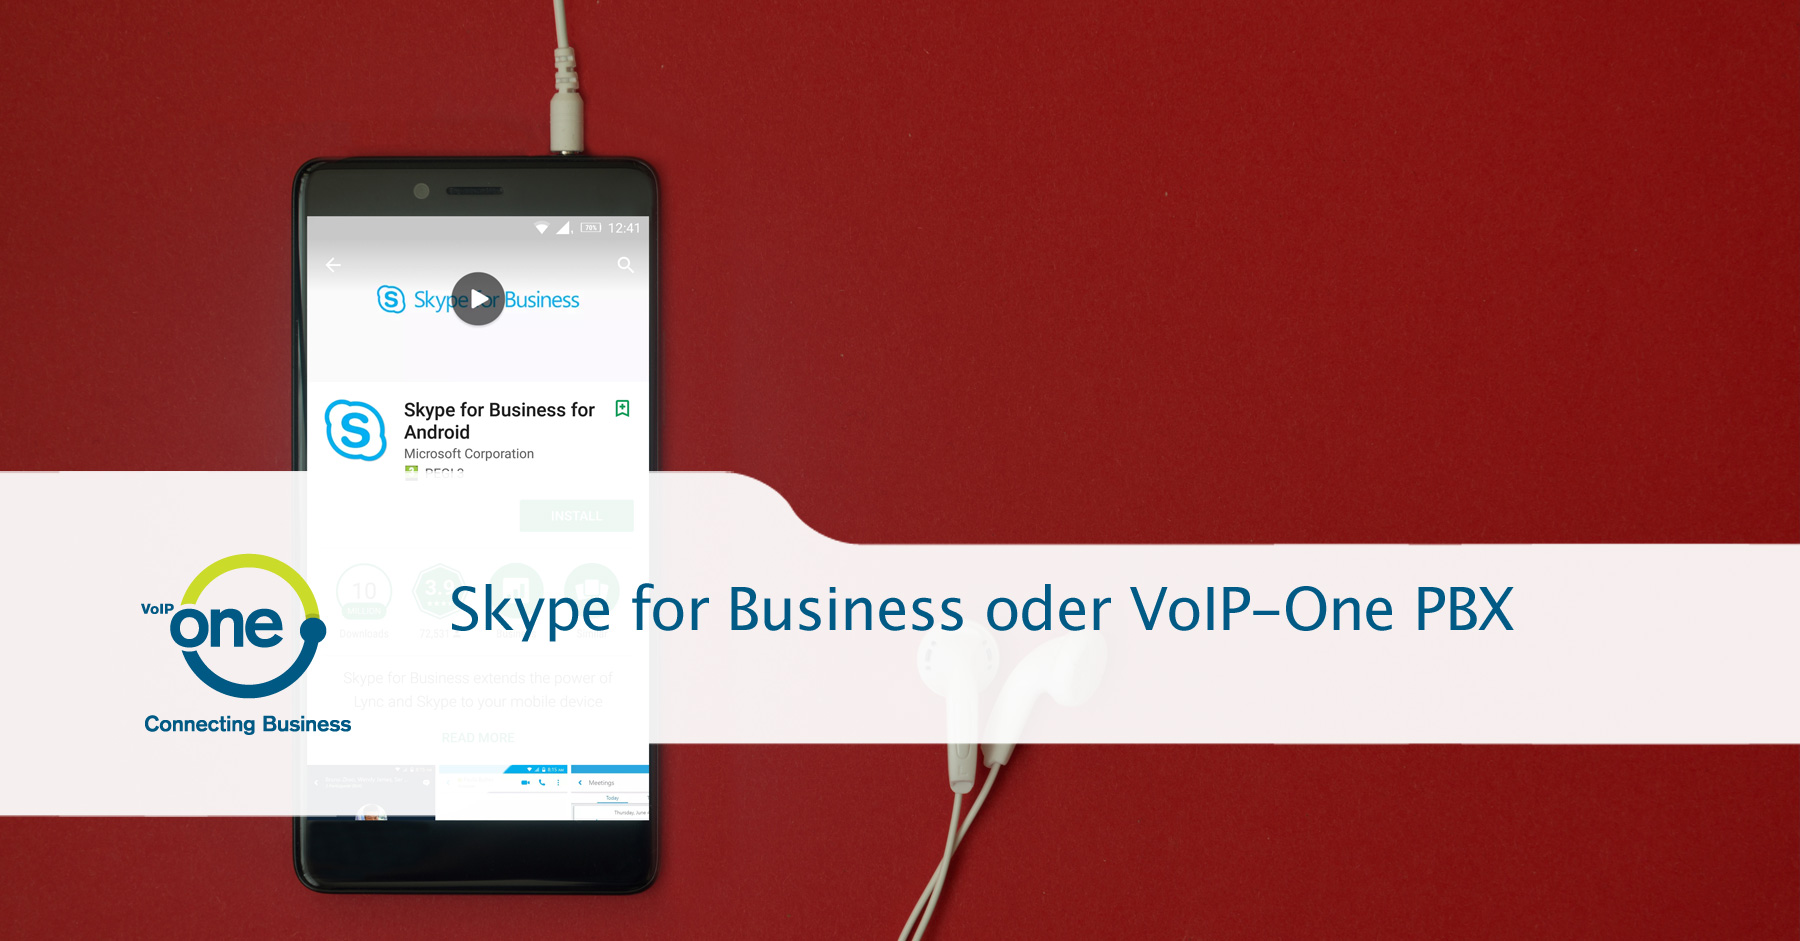 Skype for Business oder VoIP-Cube PBX